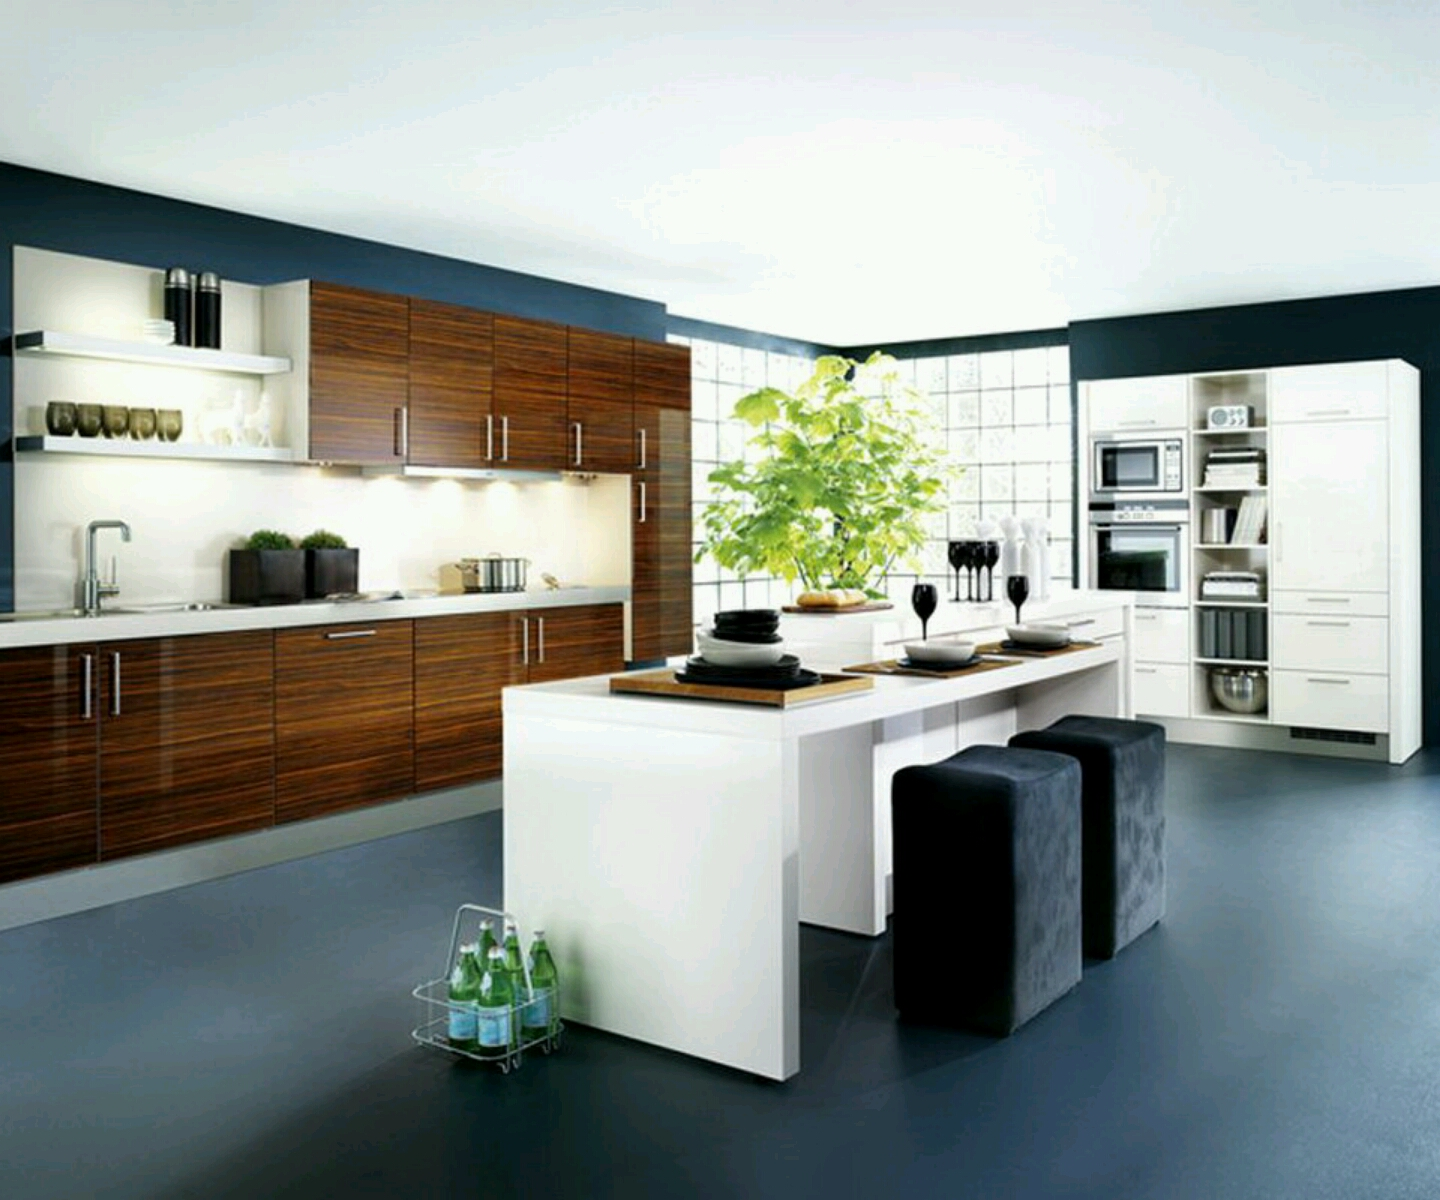 New home designs latest kitchen cabinets designs modern for Home kitchen design ideas